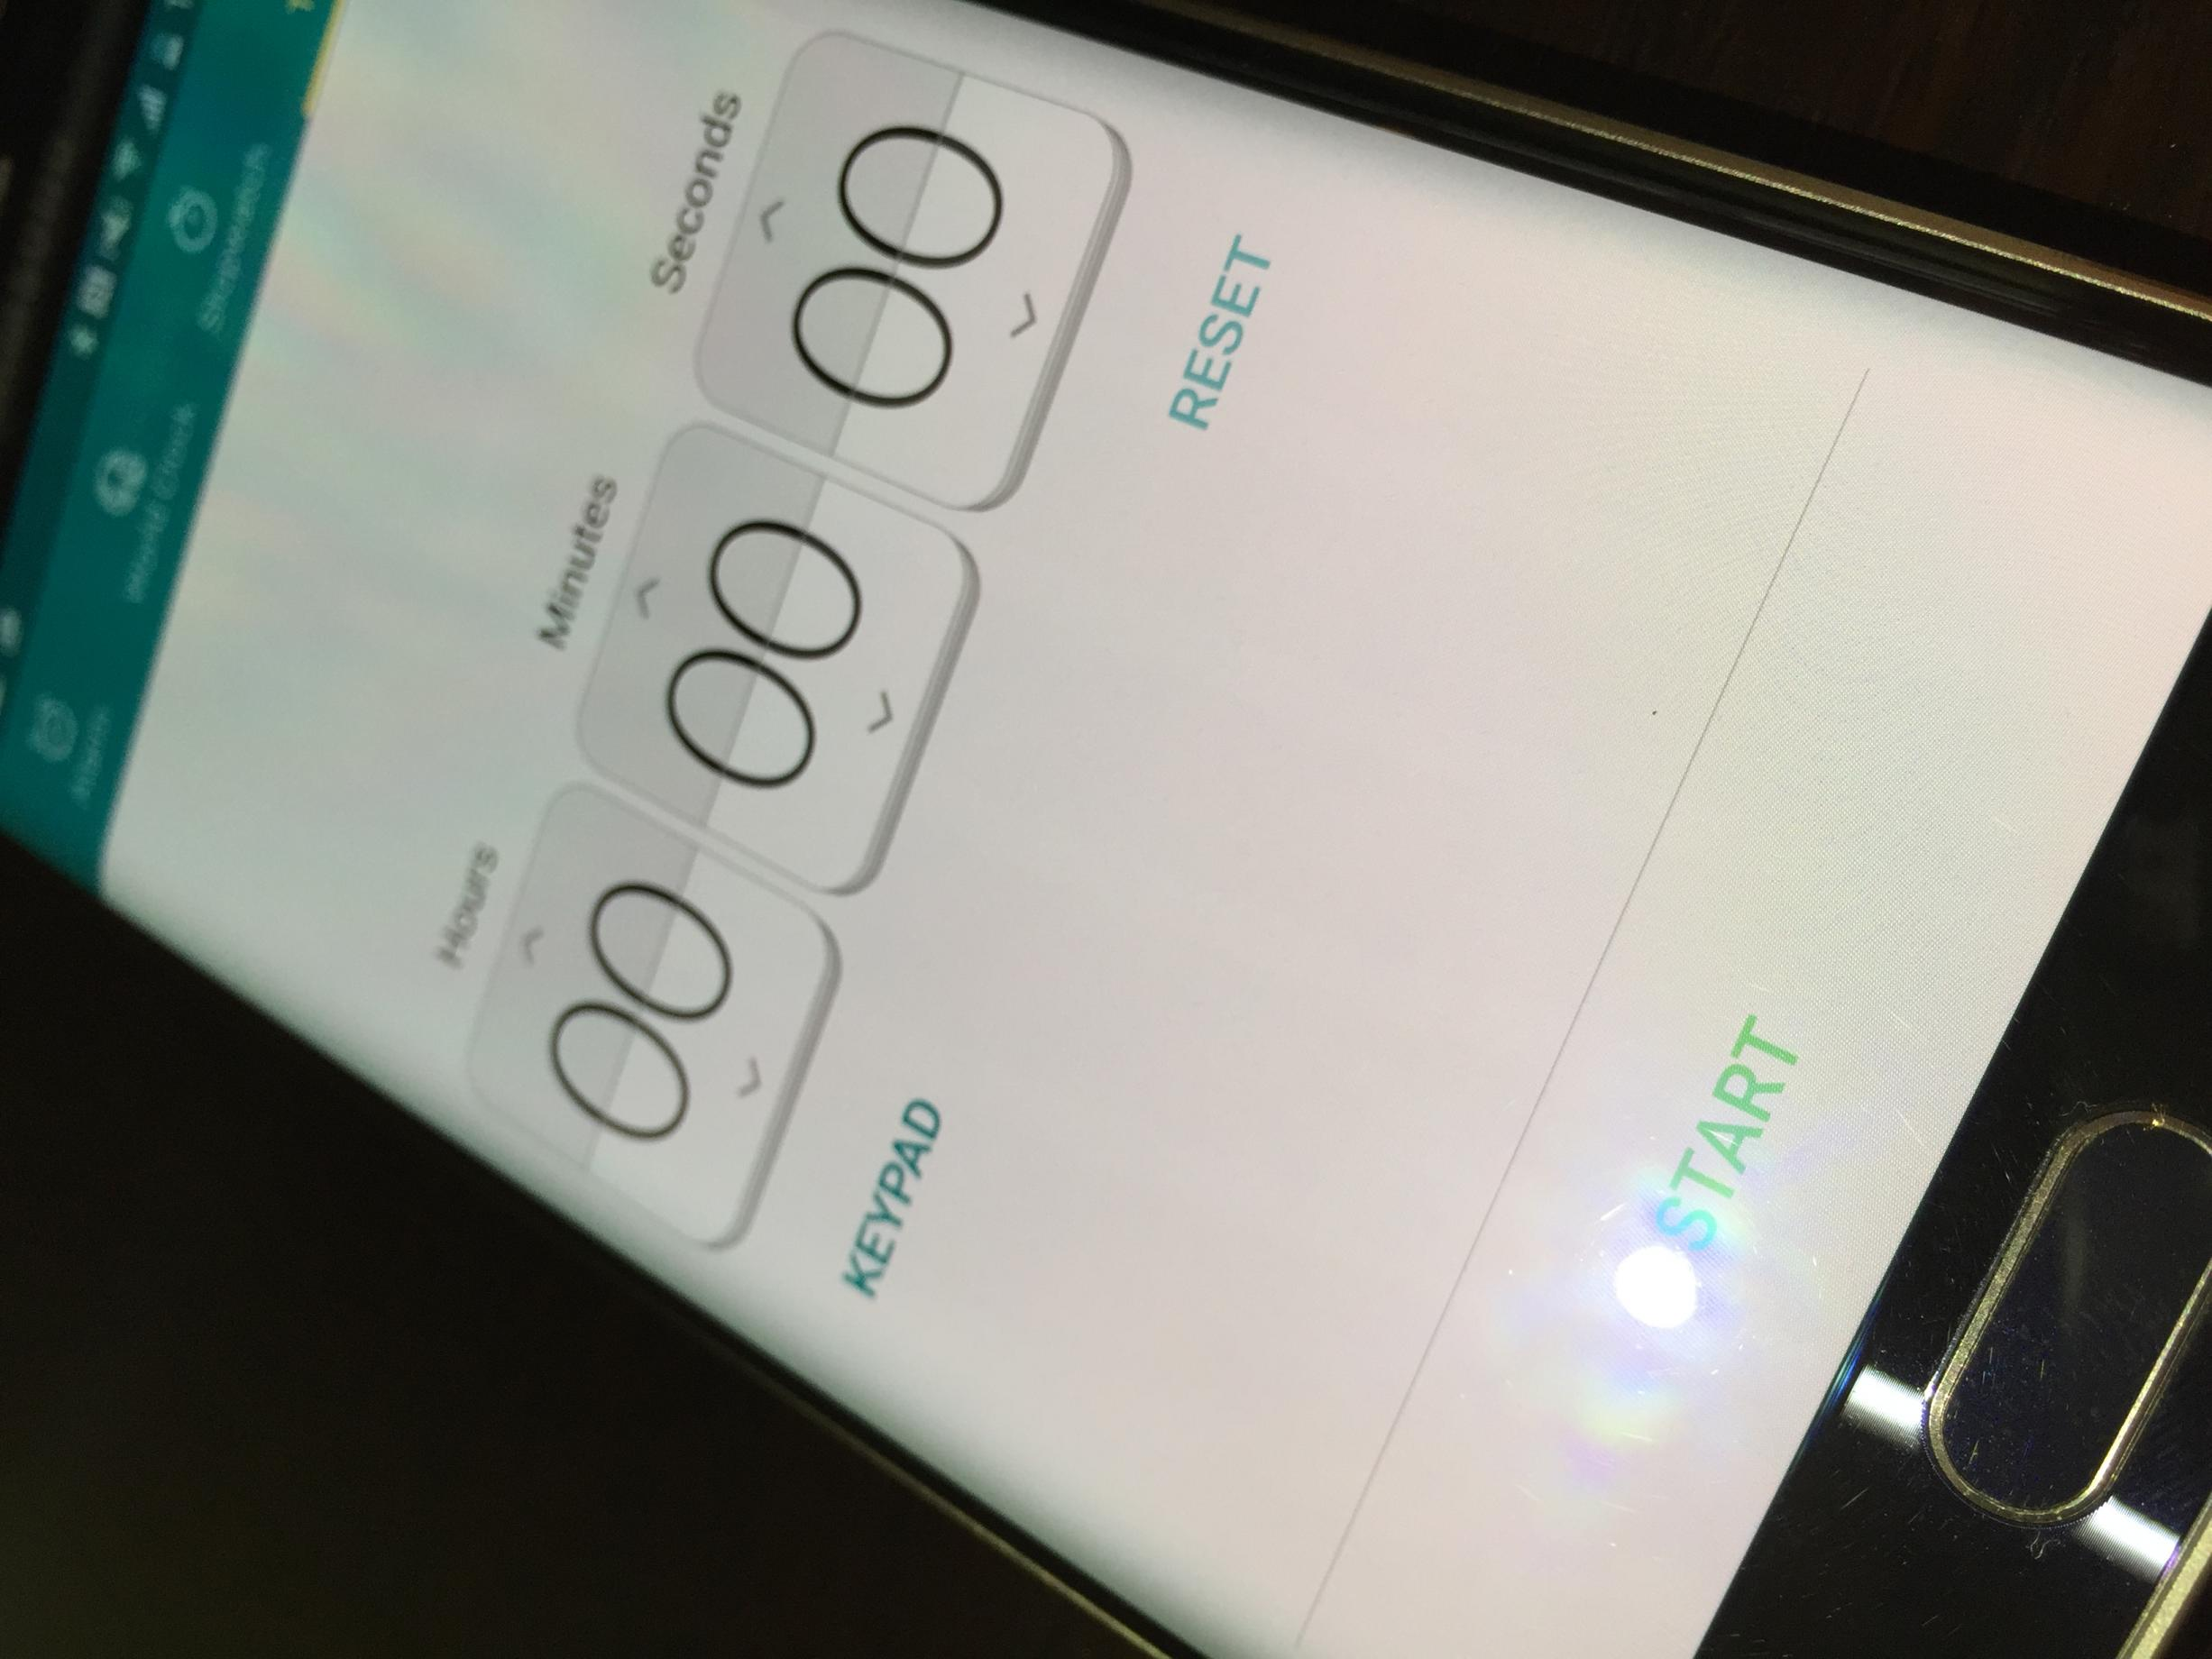 Some T-Mobile customers claim their Galaxy S6 edge units have